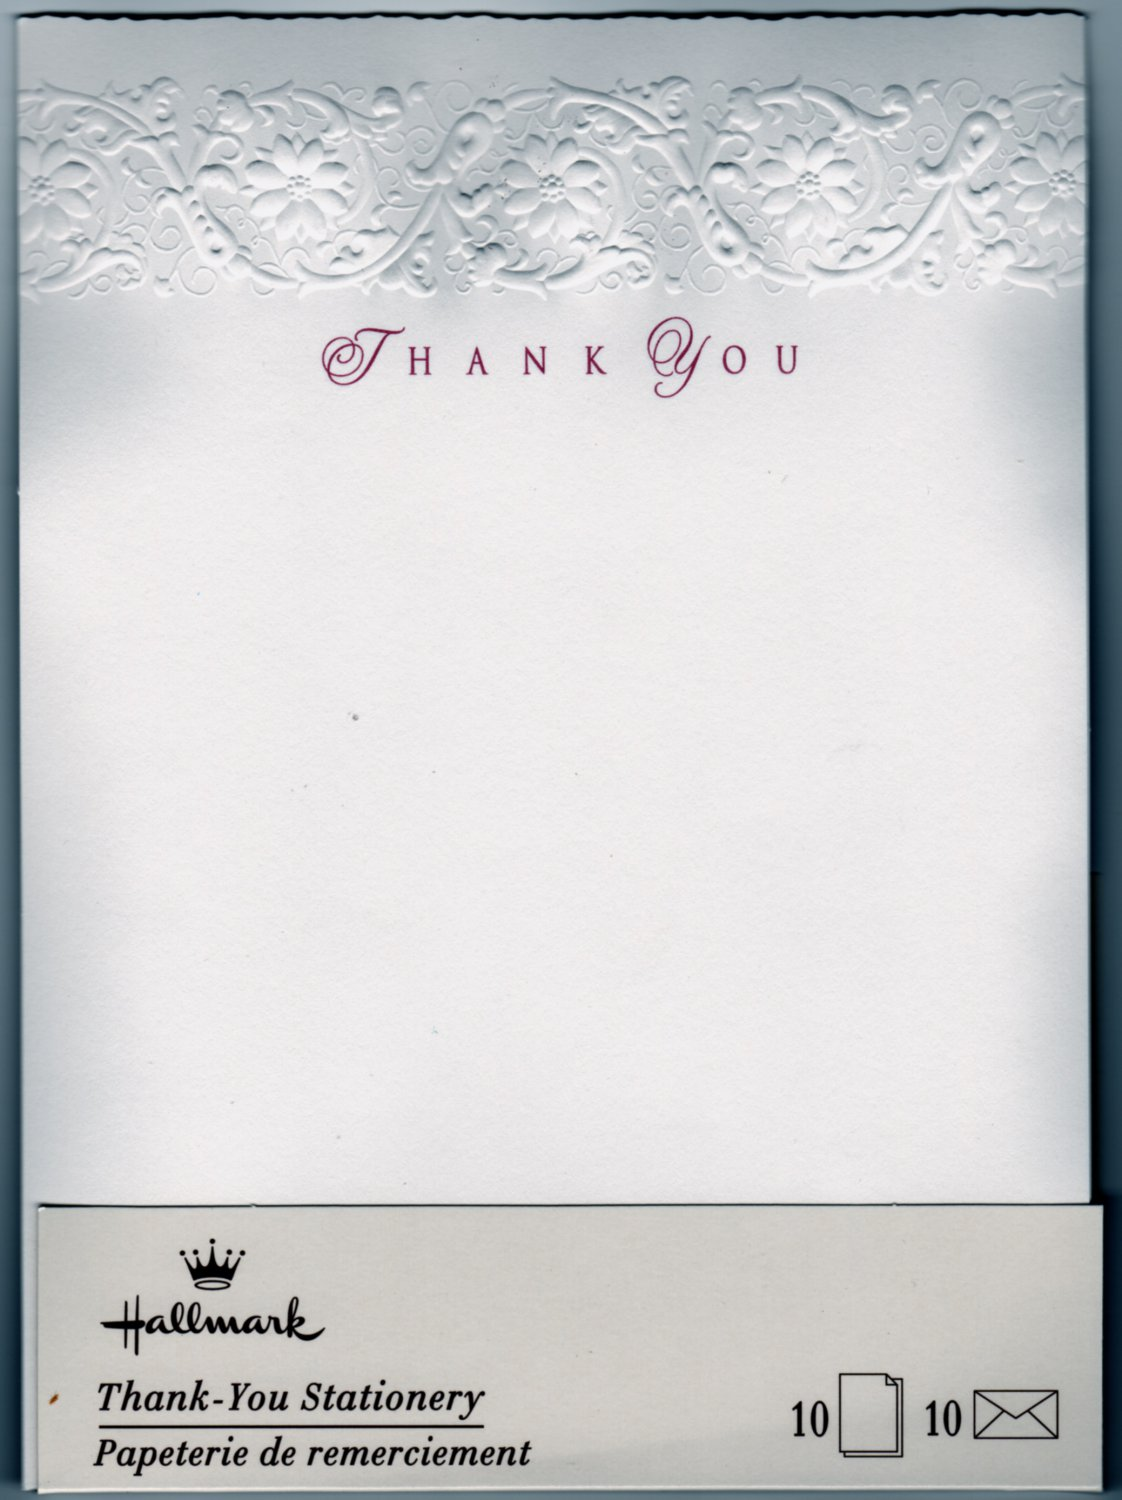 Classy Embossed Thank You Hallmark Stationery -10 Vintage 1990